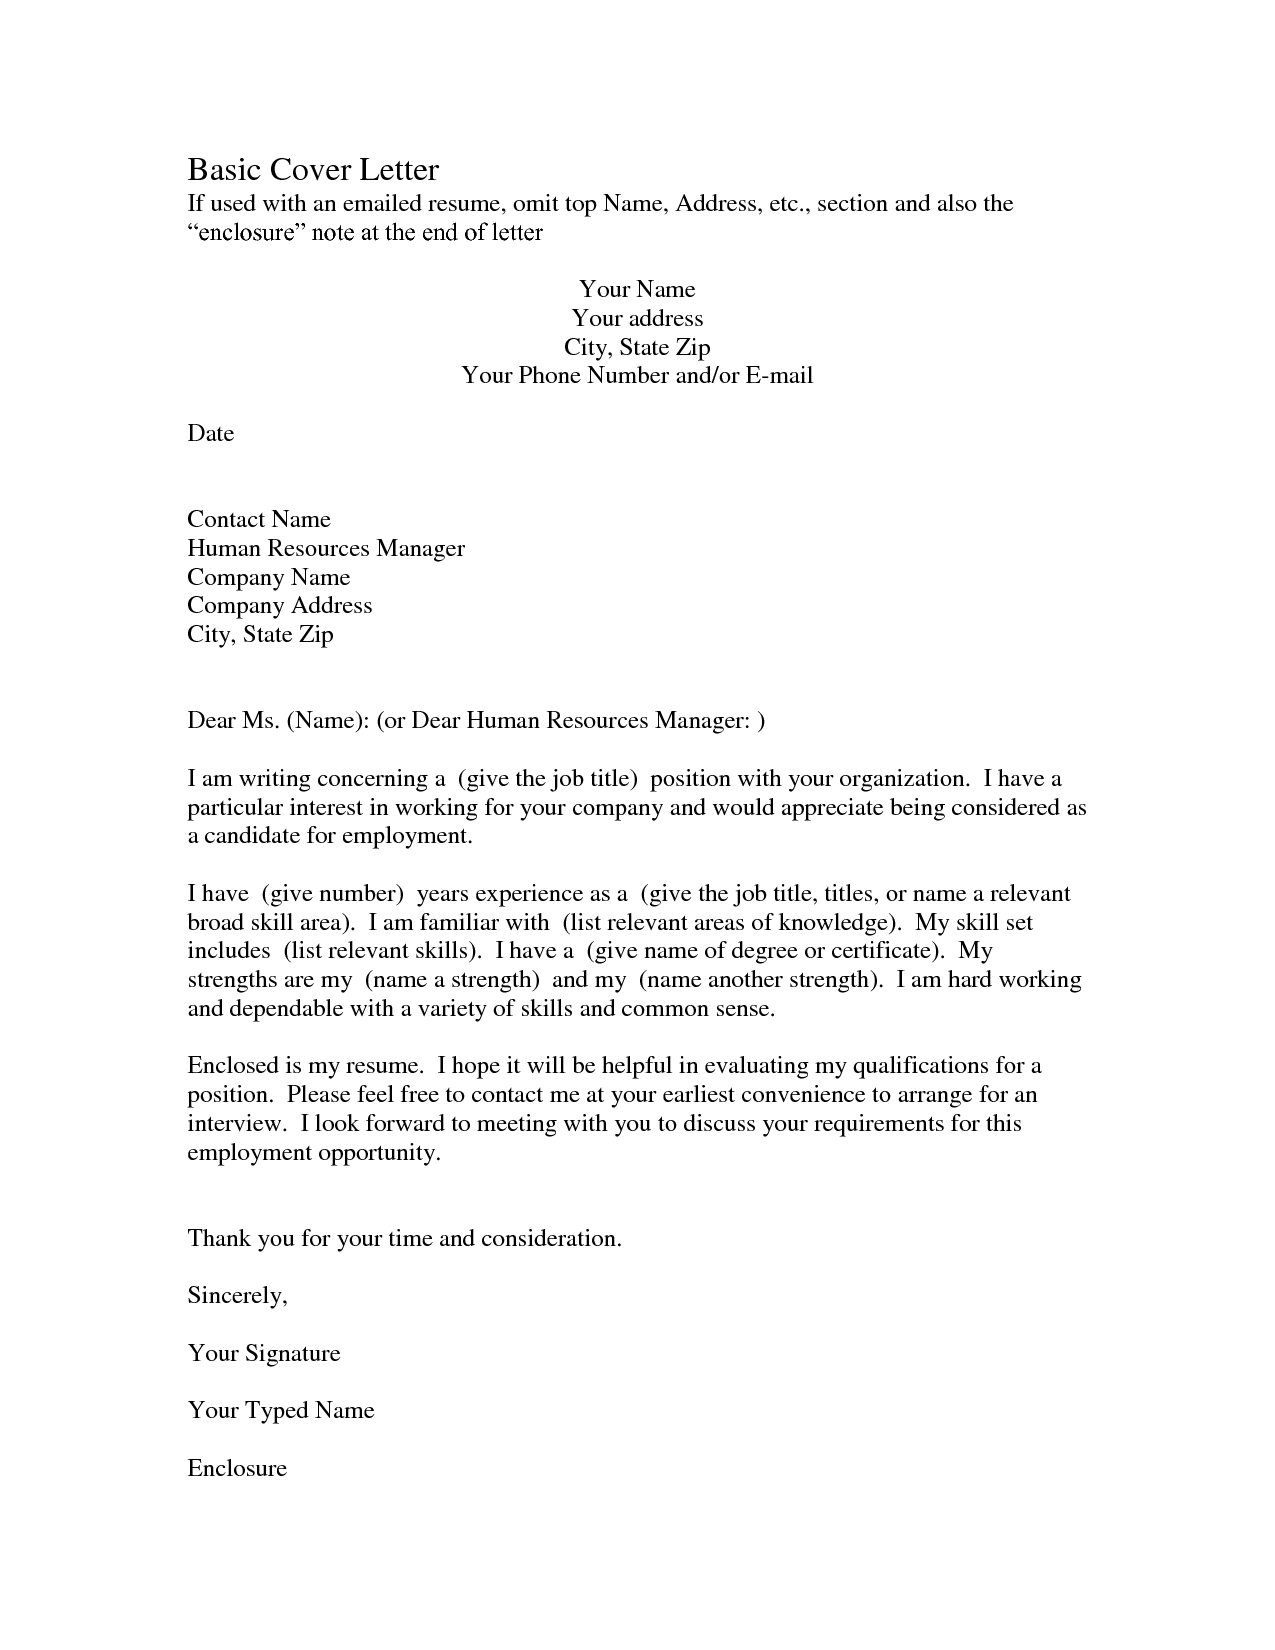 Resume Cover Letter Template This Cover Letter Sample Shows How A Resumes For Teachers Can